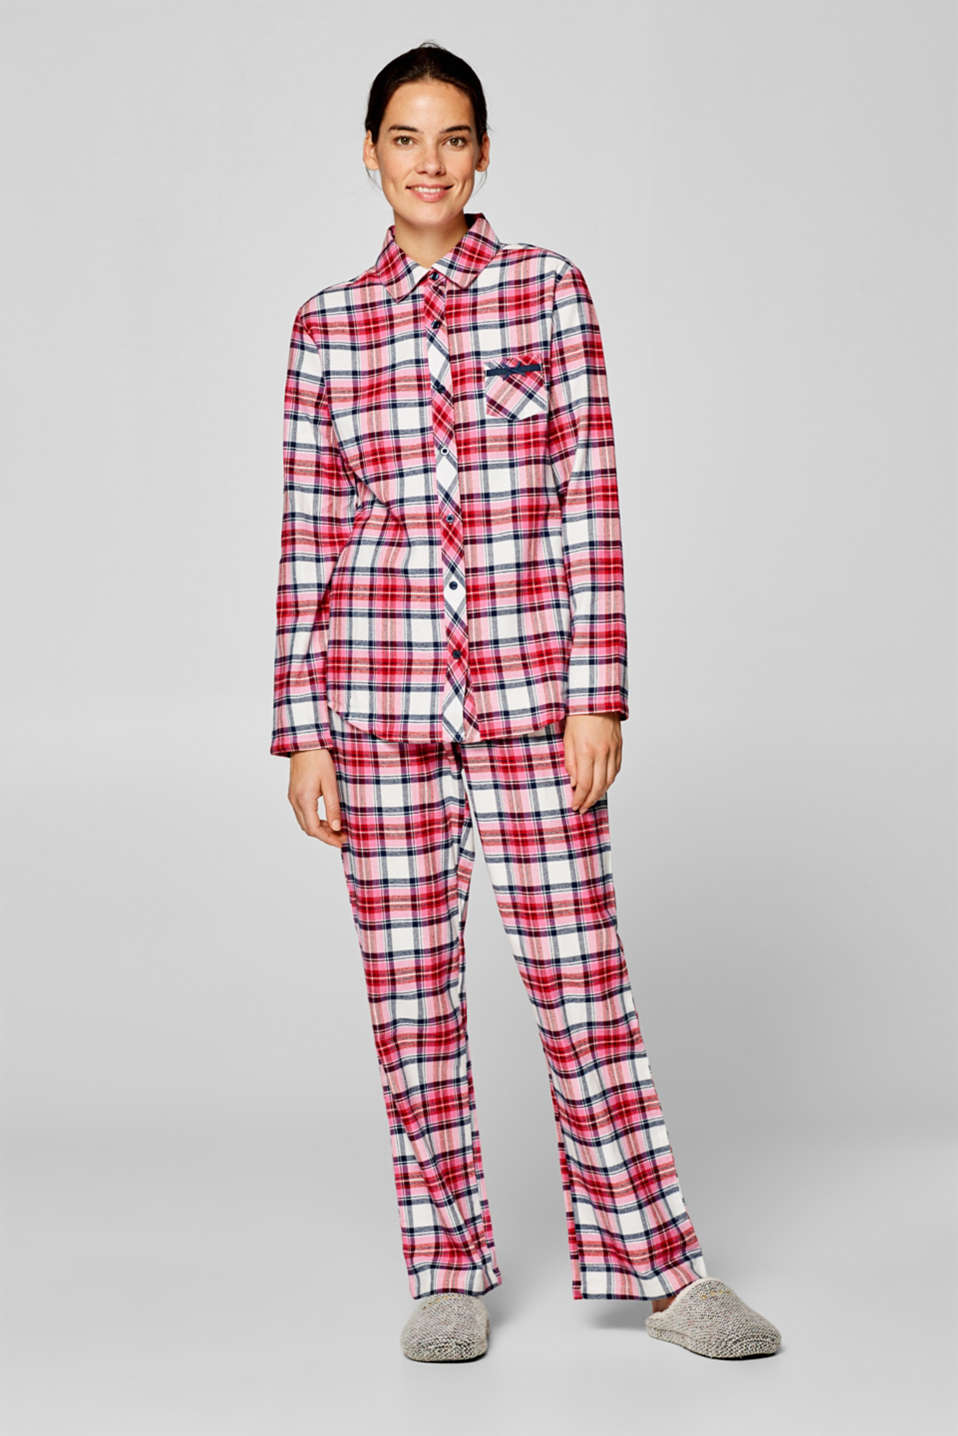 Esprit - Flannel pyjamas with check pattern, 100% cotton